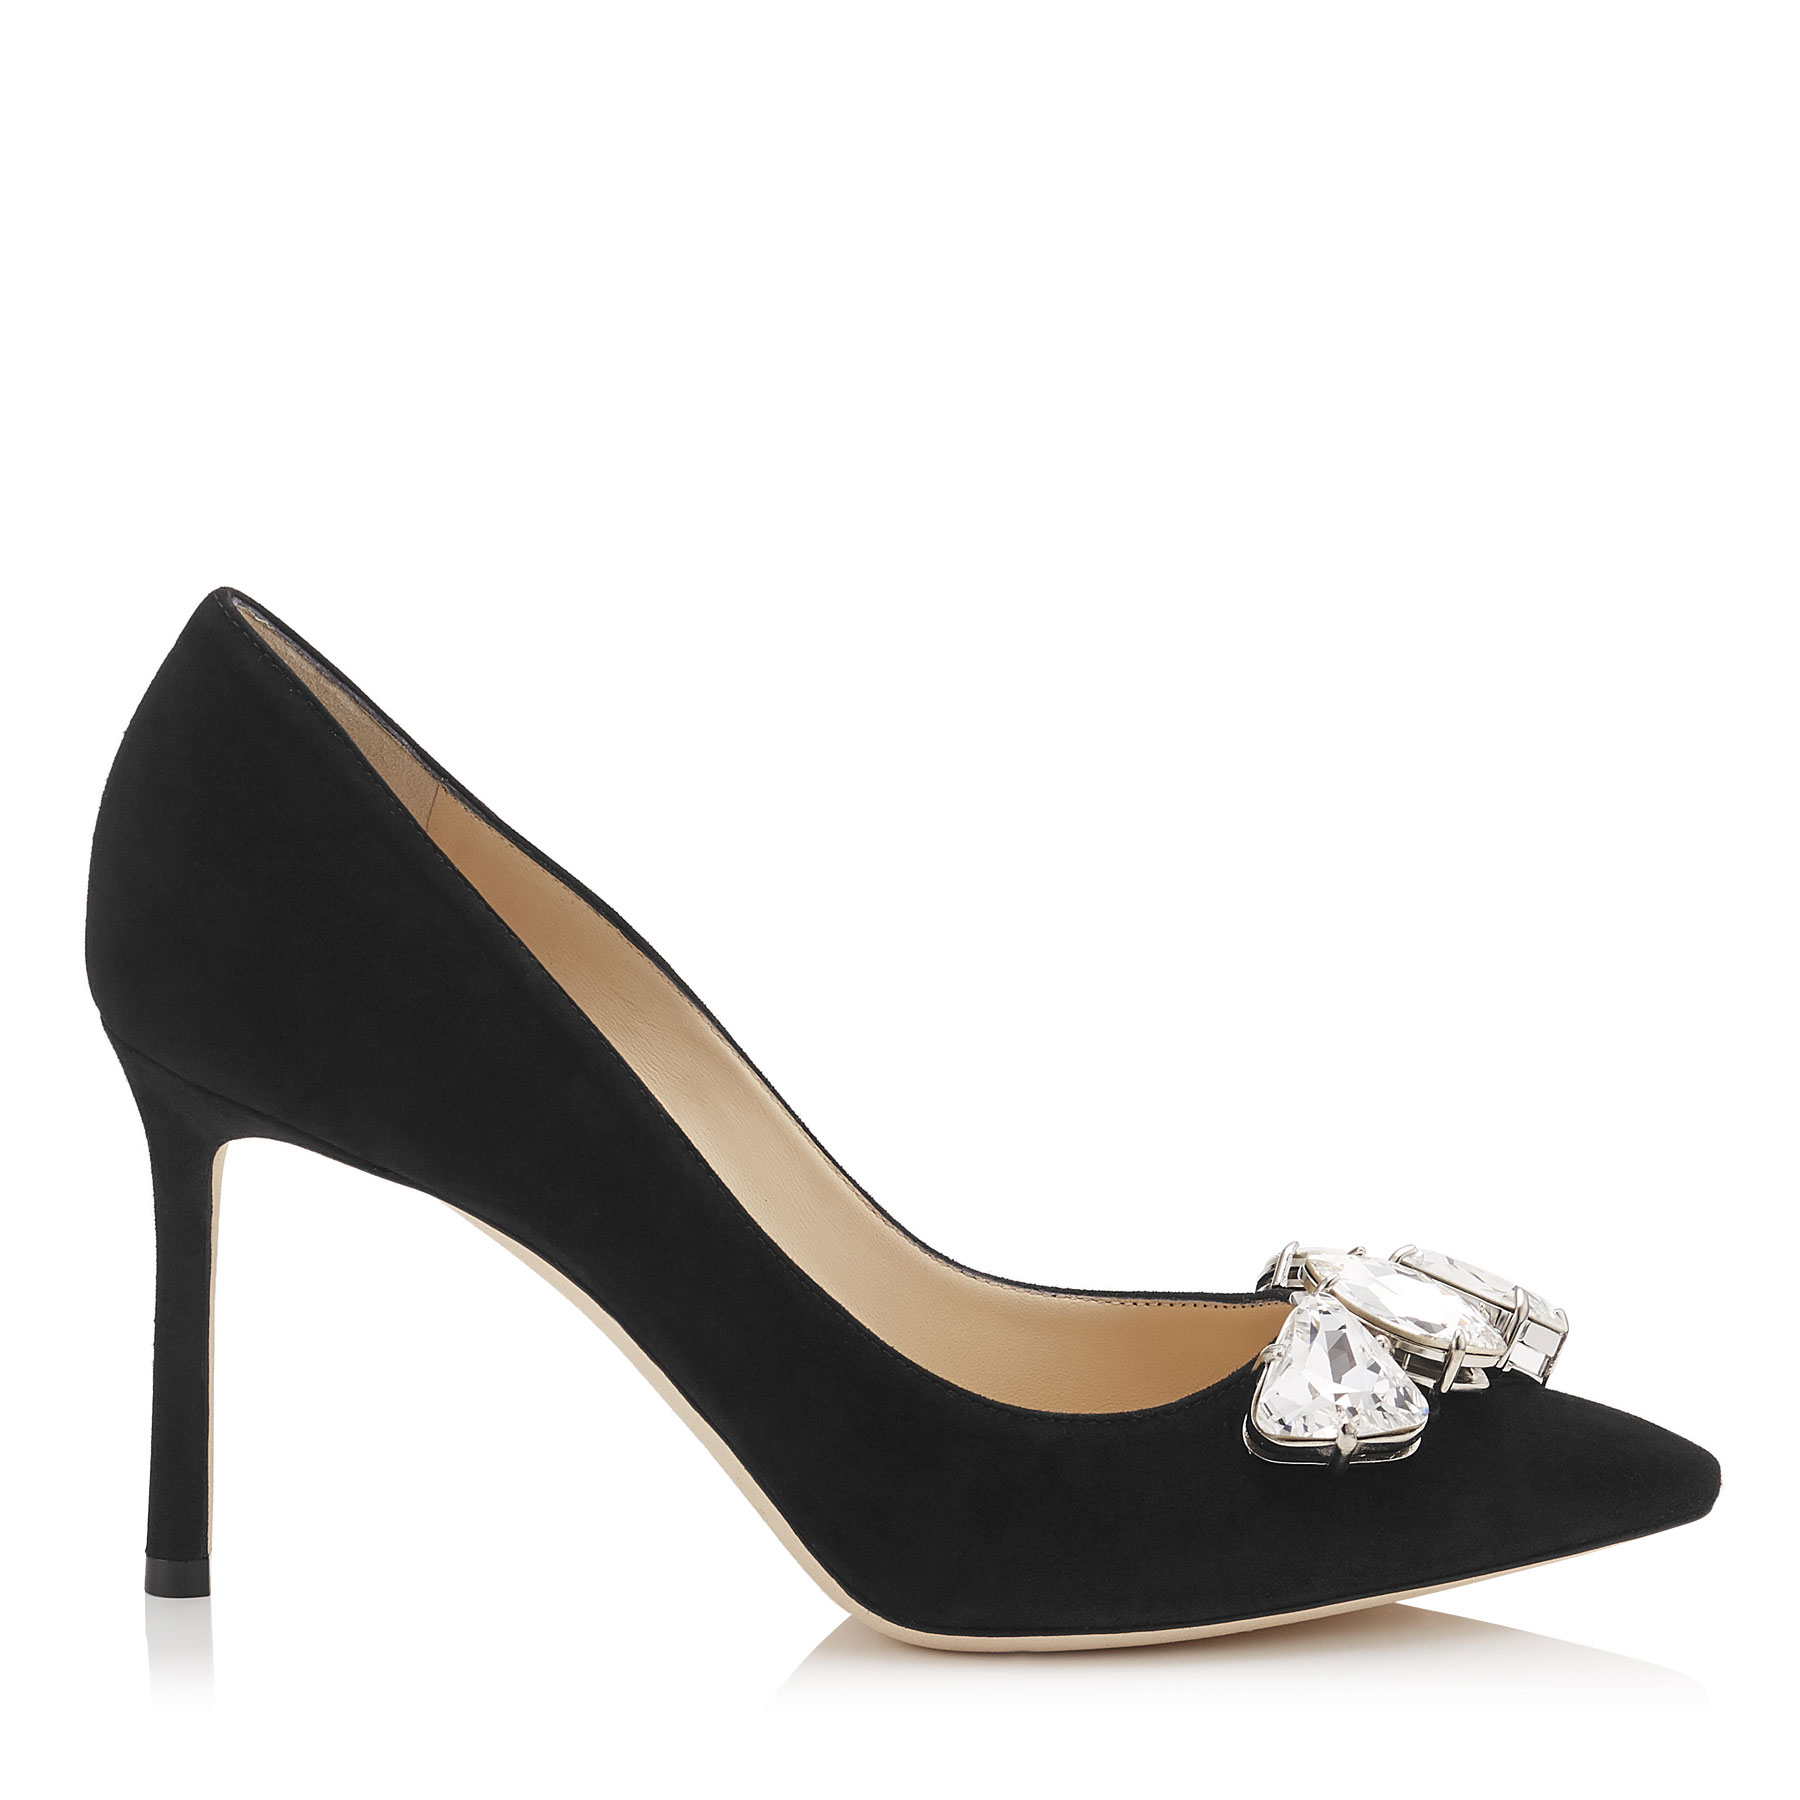 MARVEL 85 Black Suede Pointy Toe Pumps with Crystal Piece by Jimmy Choo